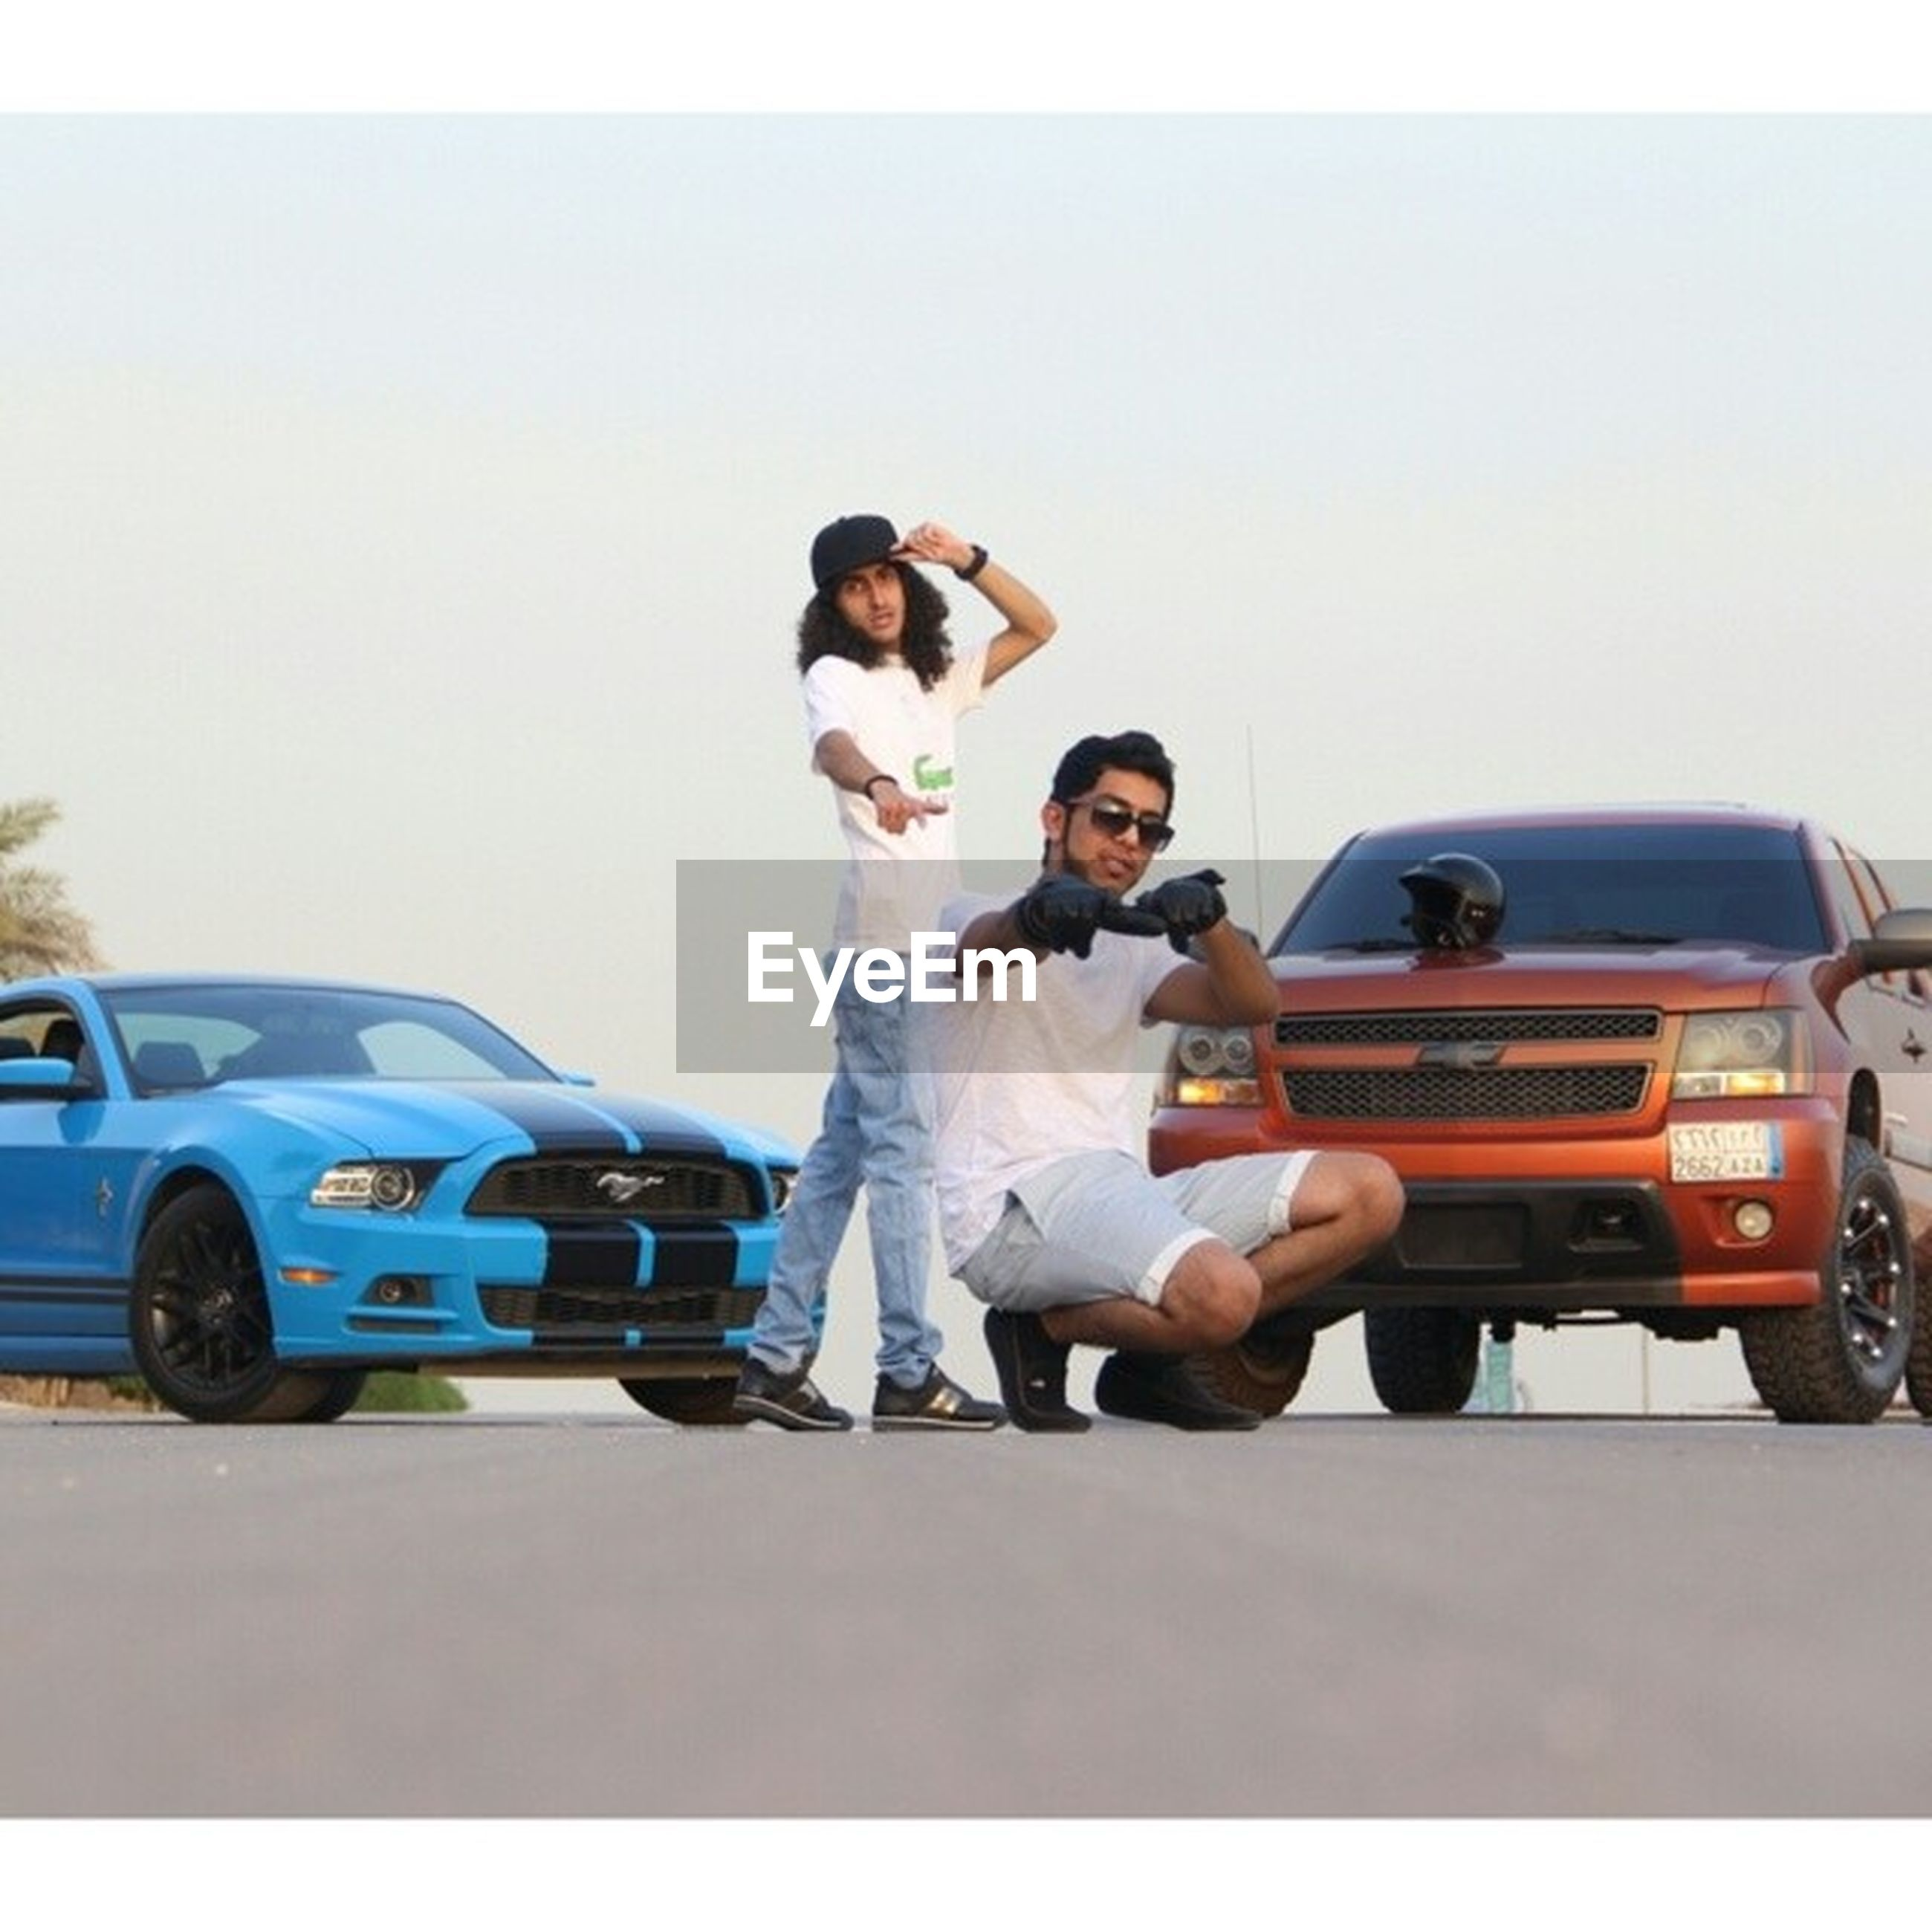 lifestyles, leisure activity, transportation, land vehicle, mode of transport, casual clothing, men, car, young adult, holding, full length, young men, person, clear sky, togetherness, photography themes, front view